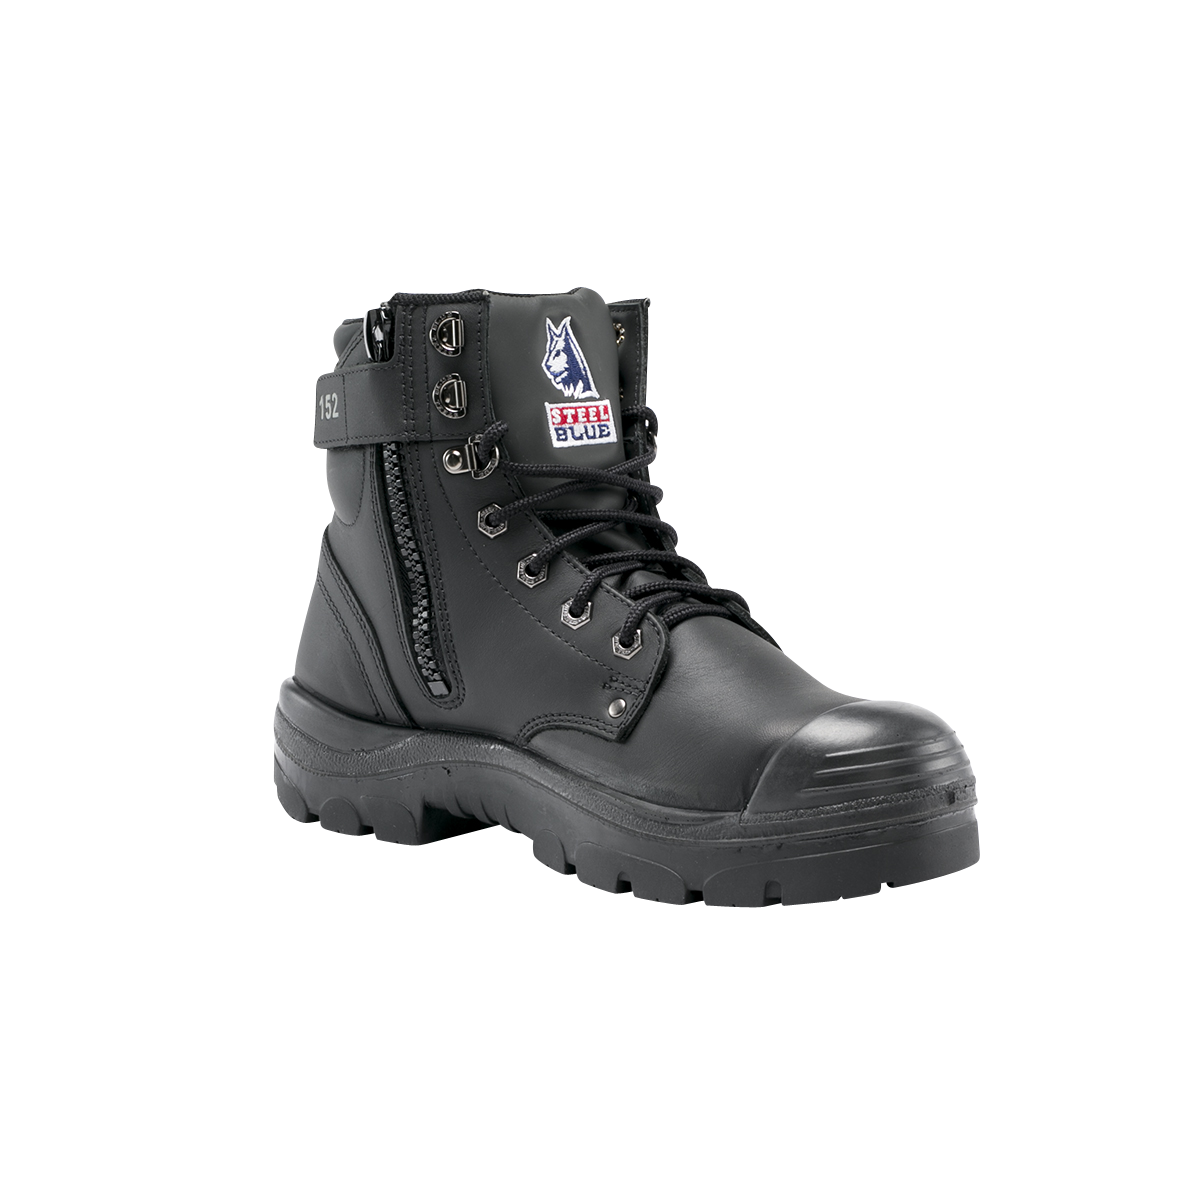 Argyle Zip w Bump Cap Boot - 332152